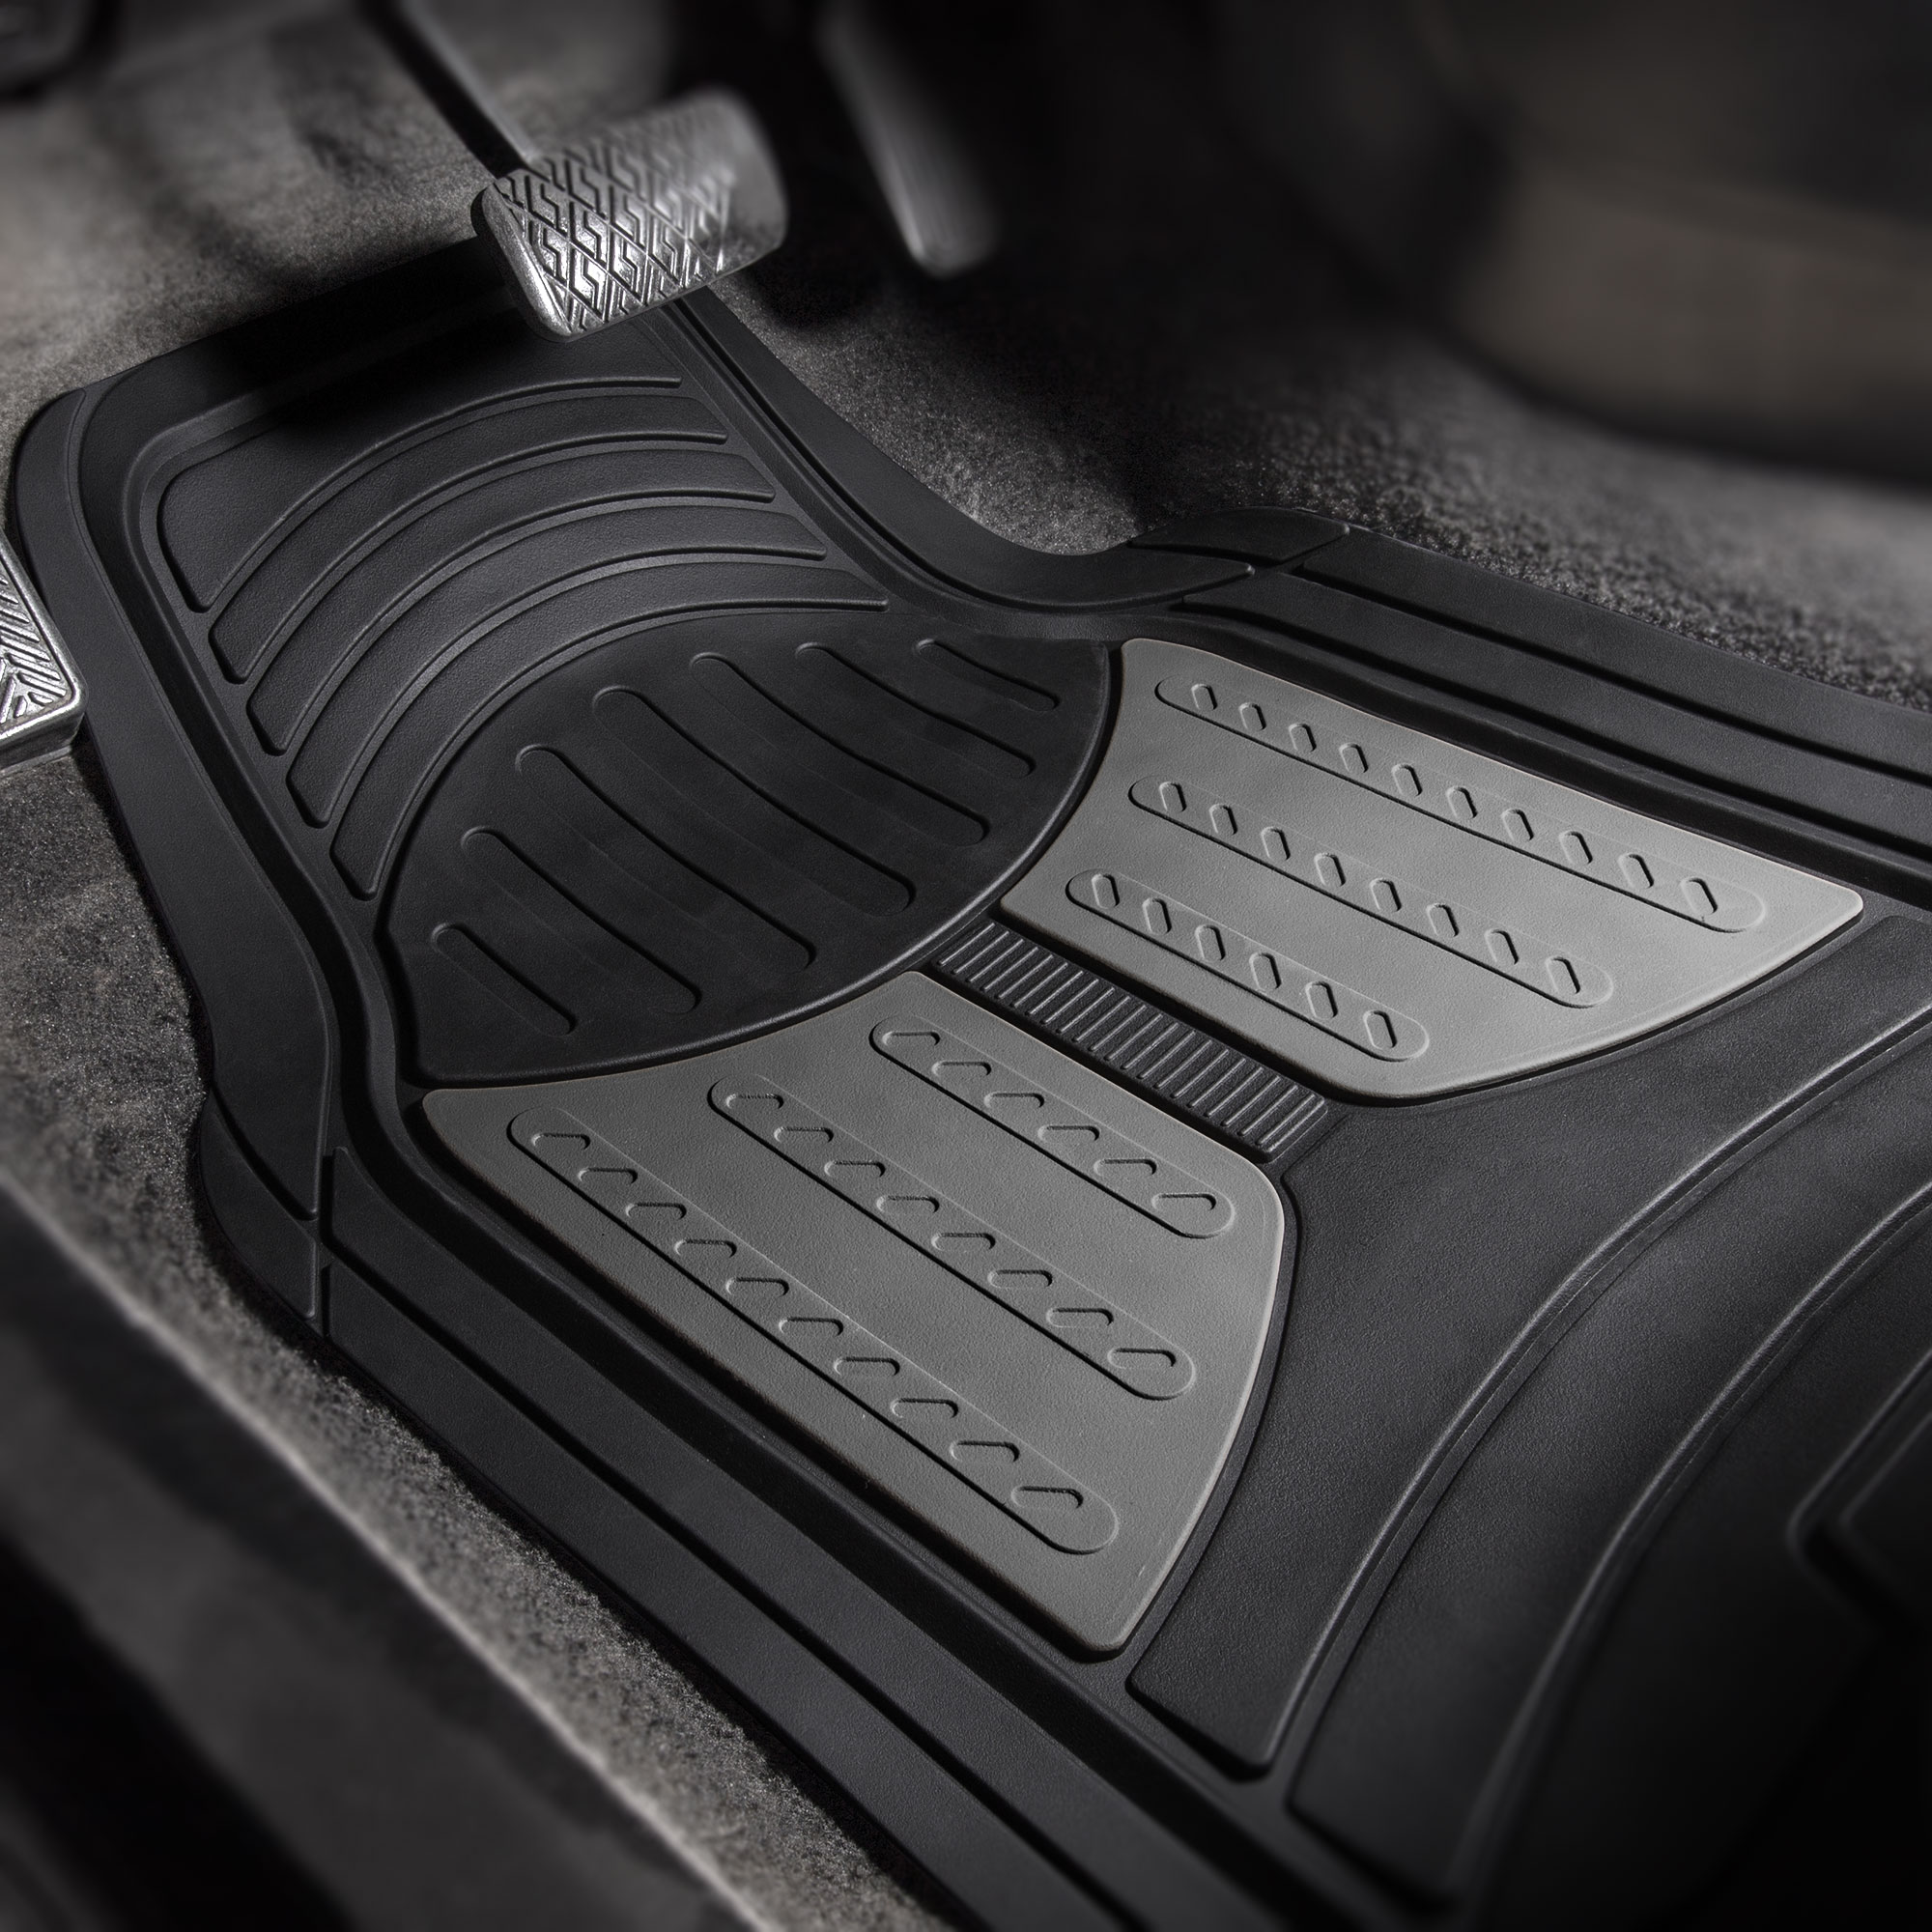 Car-Floor-Mats-for-All-Weather-Rubber-2-Tone-Design-4pc-Set-Heavy-Duty thumbnail 22